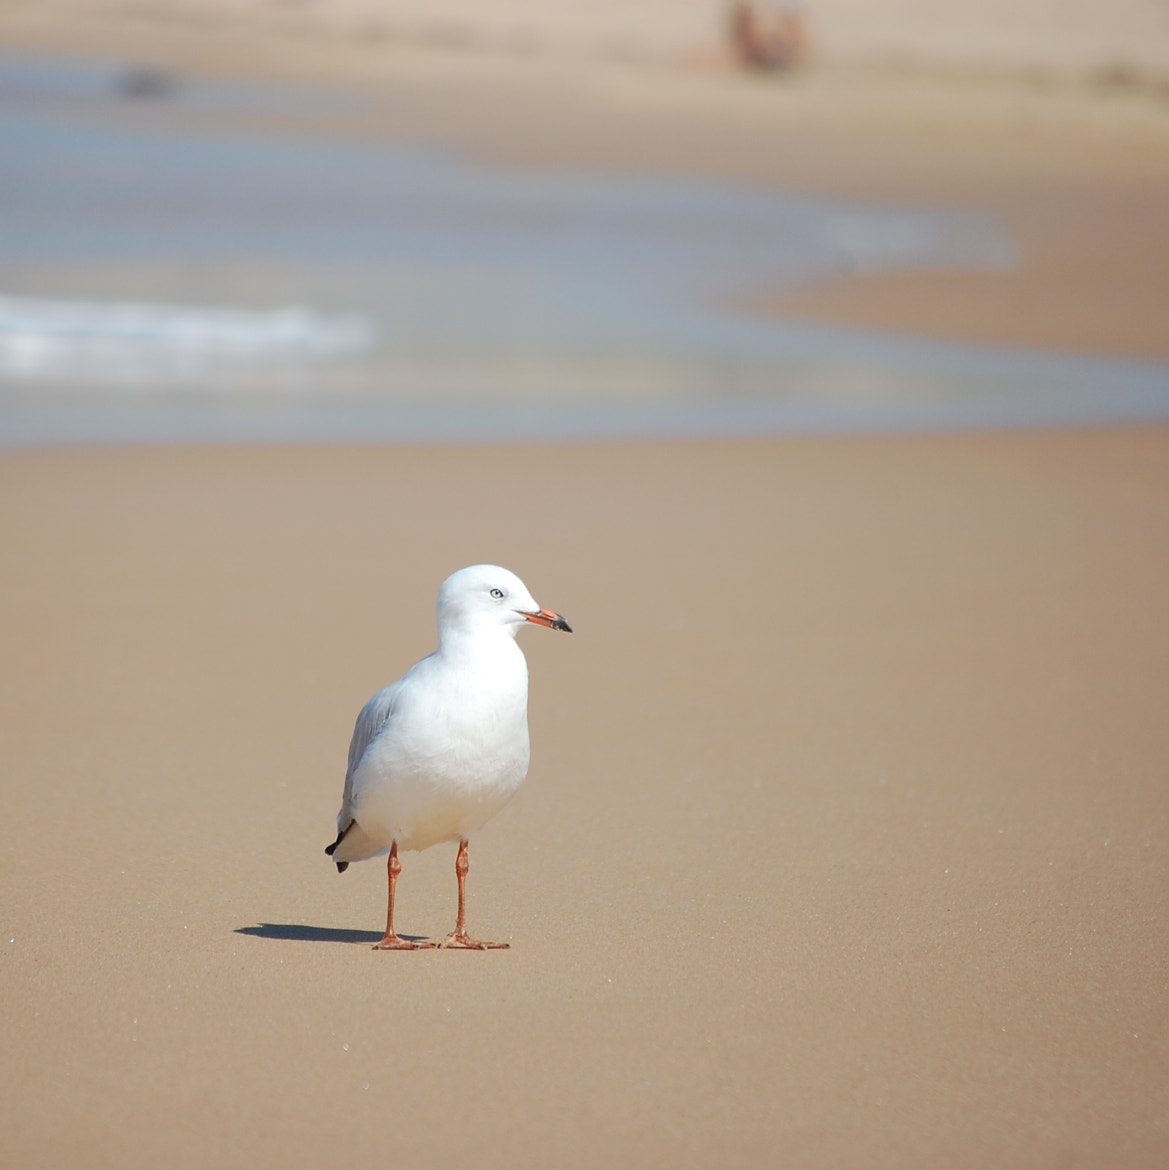 Photograph Sea Gull by King Chen on 500px